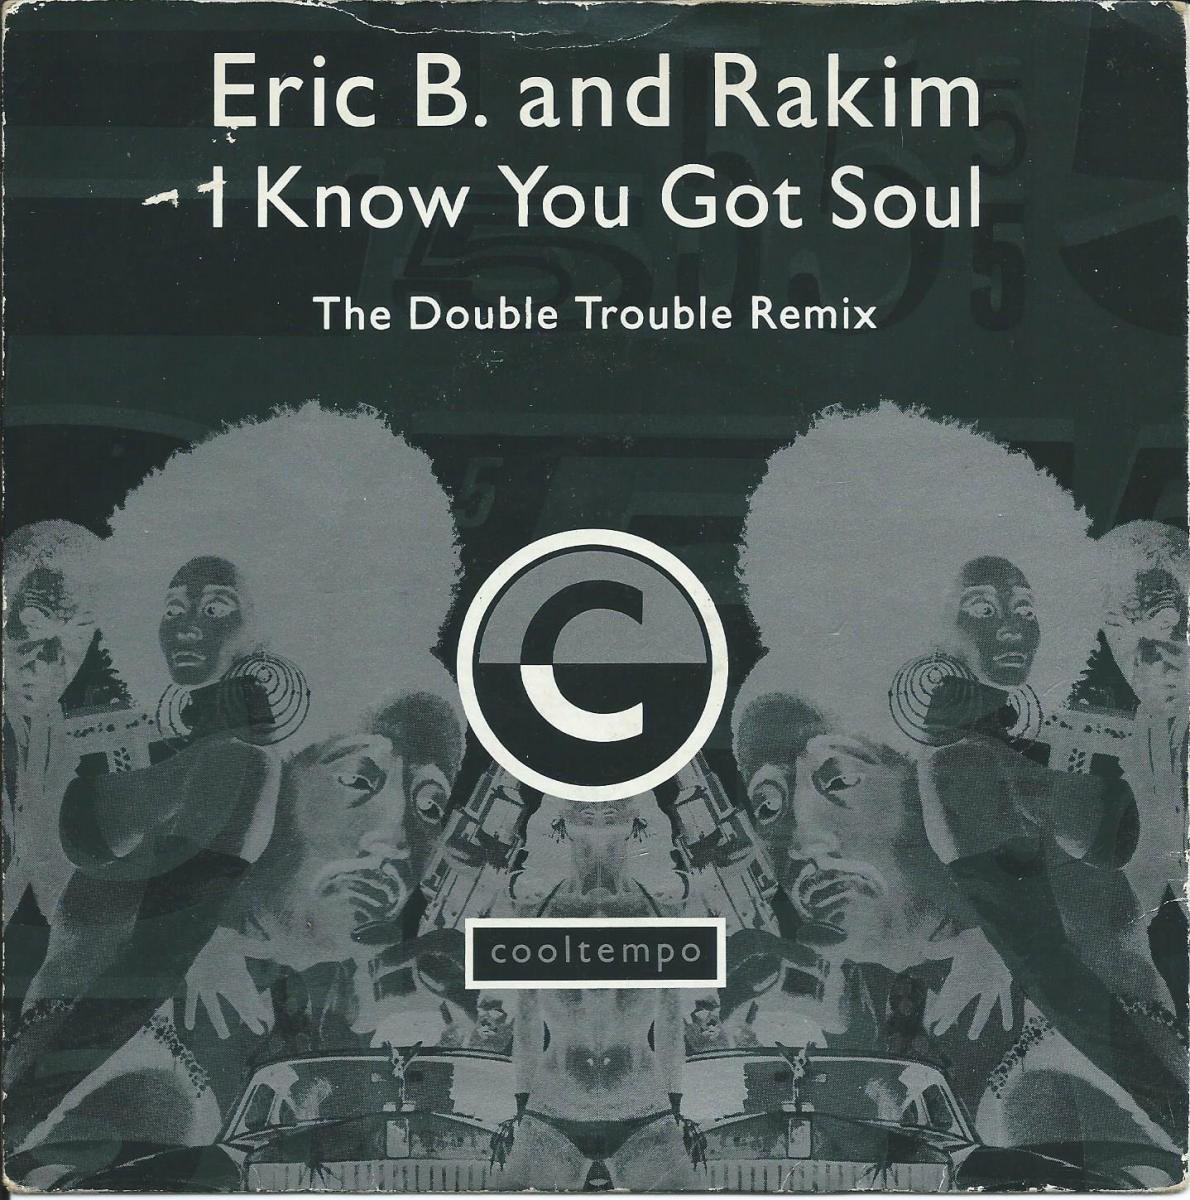 ERIC B. & RAKIM / I KNOW YOU GOT SOUL (THE DOUBLE TROUBLE REMIX) (7